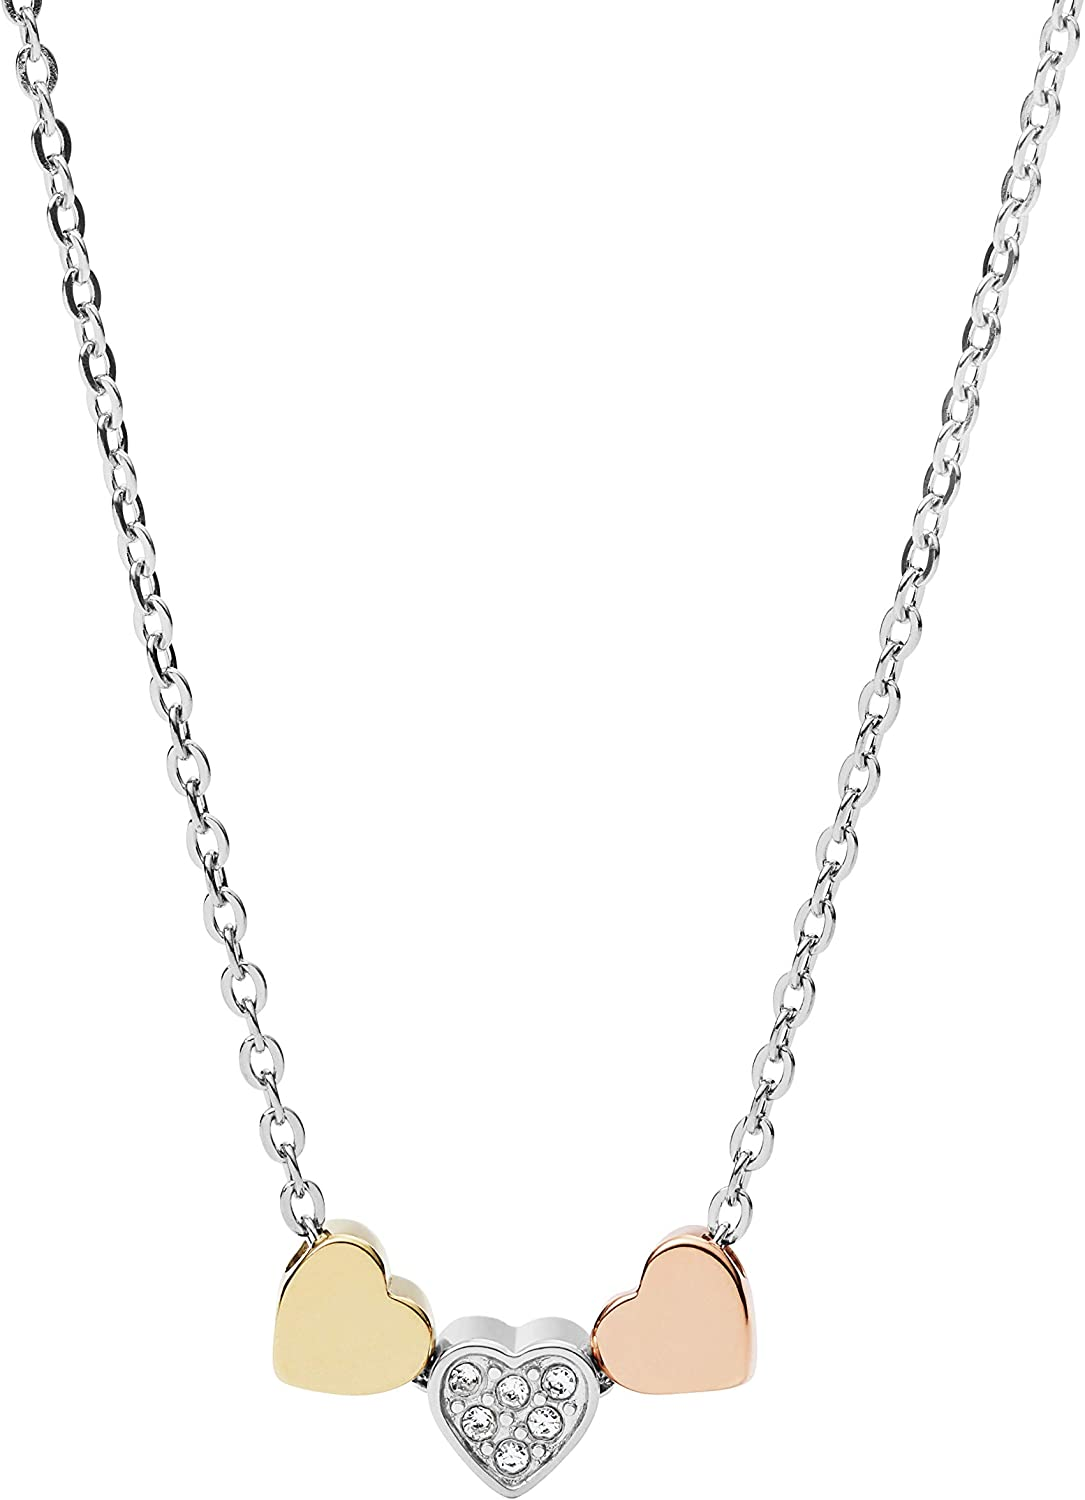 Fossil Women's Stainless Steel Silver-Tone Pendant Necklace